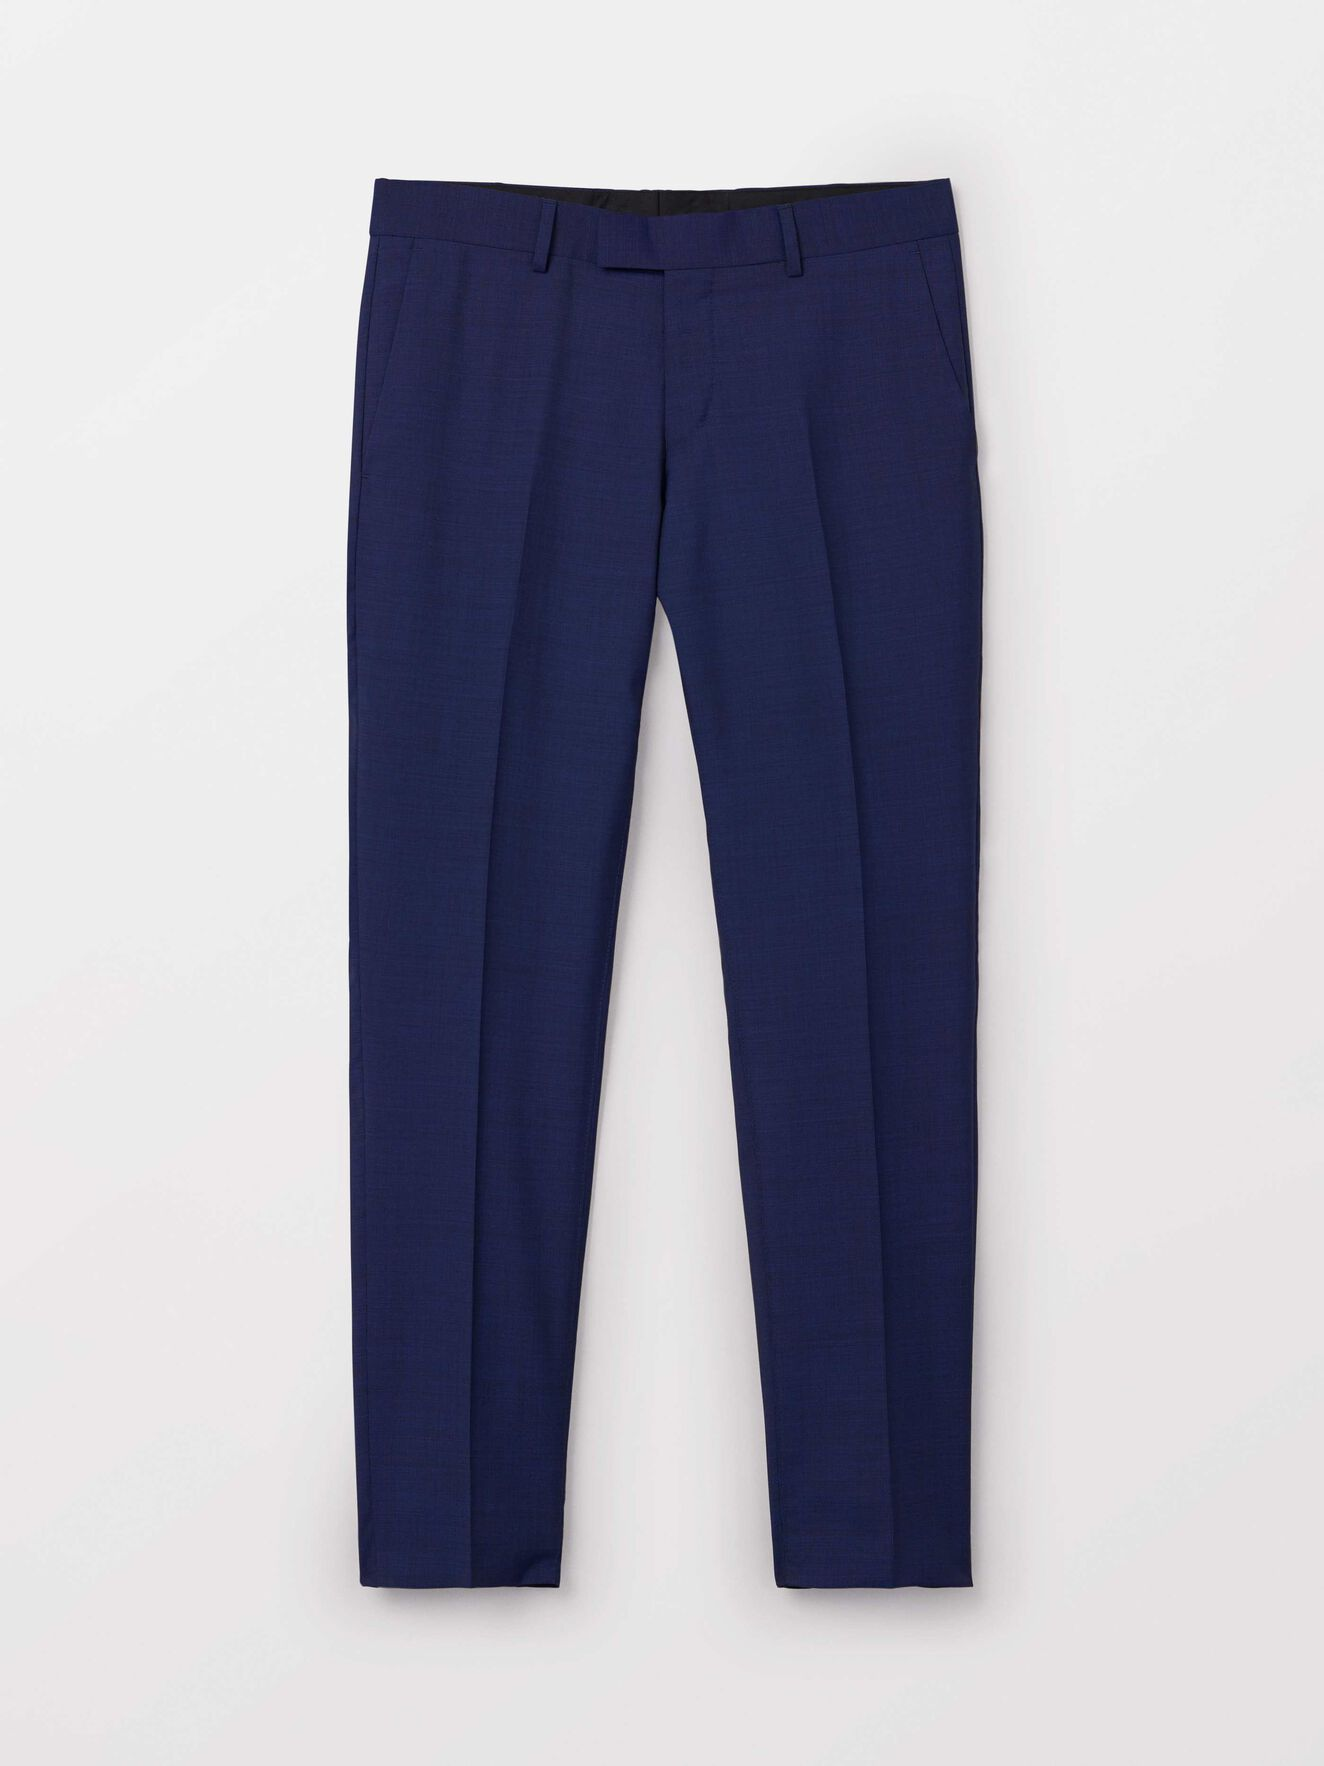 Tordon Trousers in Deep Ocean Blue from Tiger of Sweden